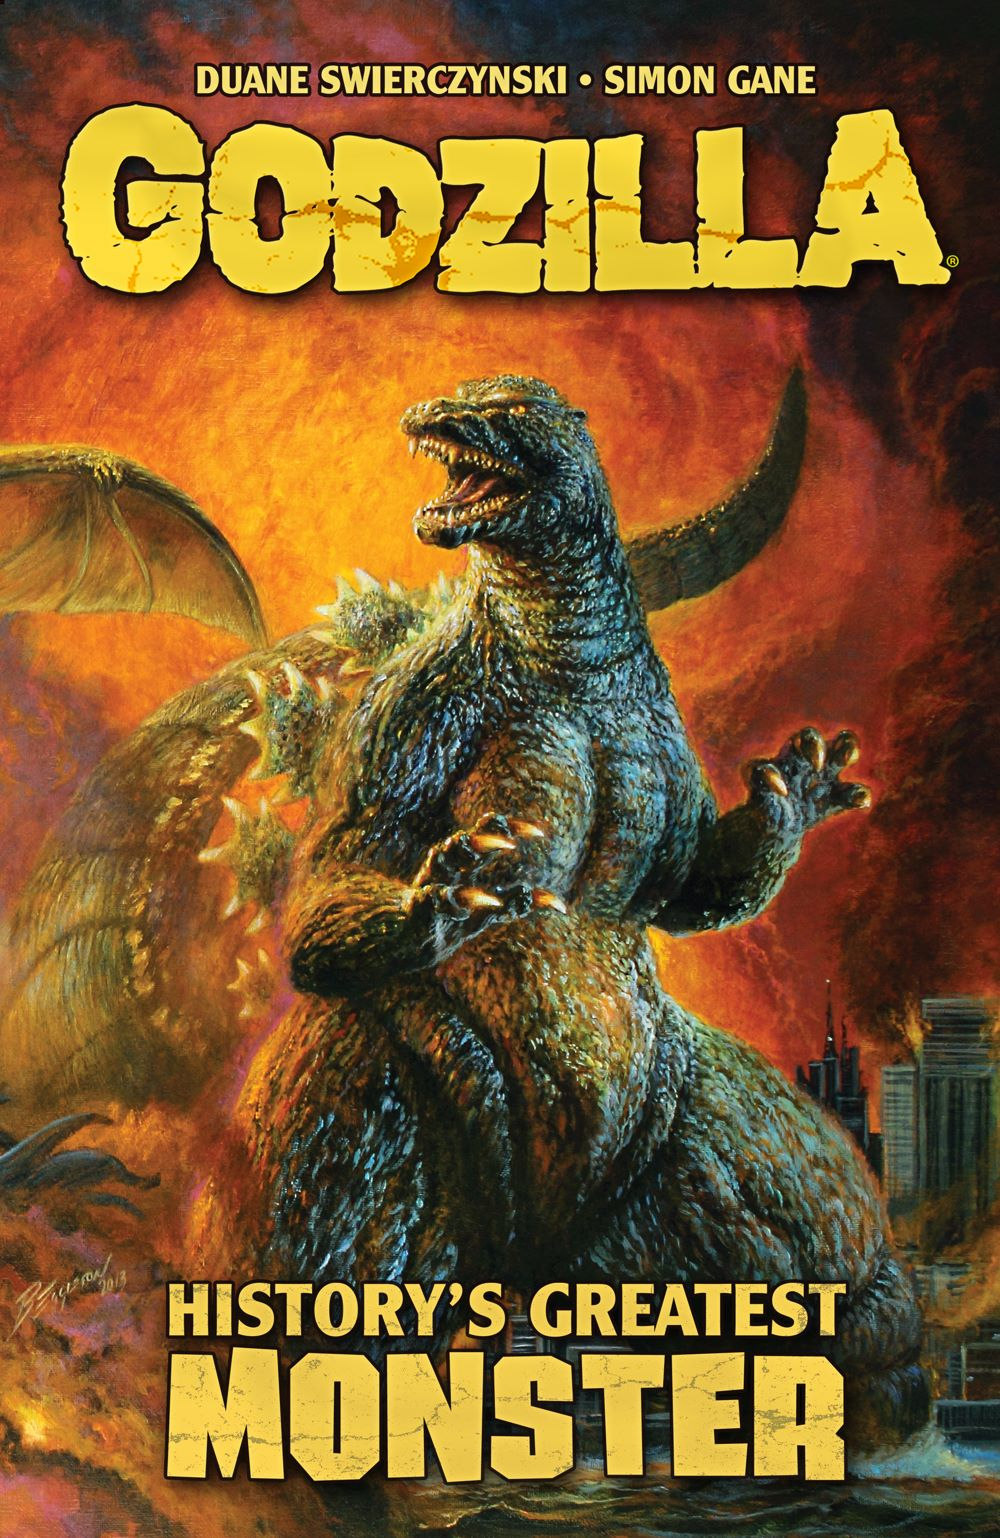 GODZILLA_HGM_COVERFRONT_CROPPED ComicList: IDW Publishing New Releases for 01/27/2021